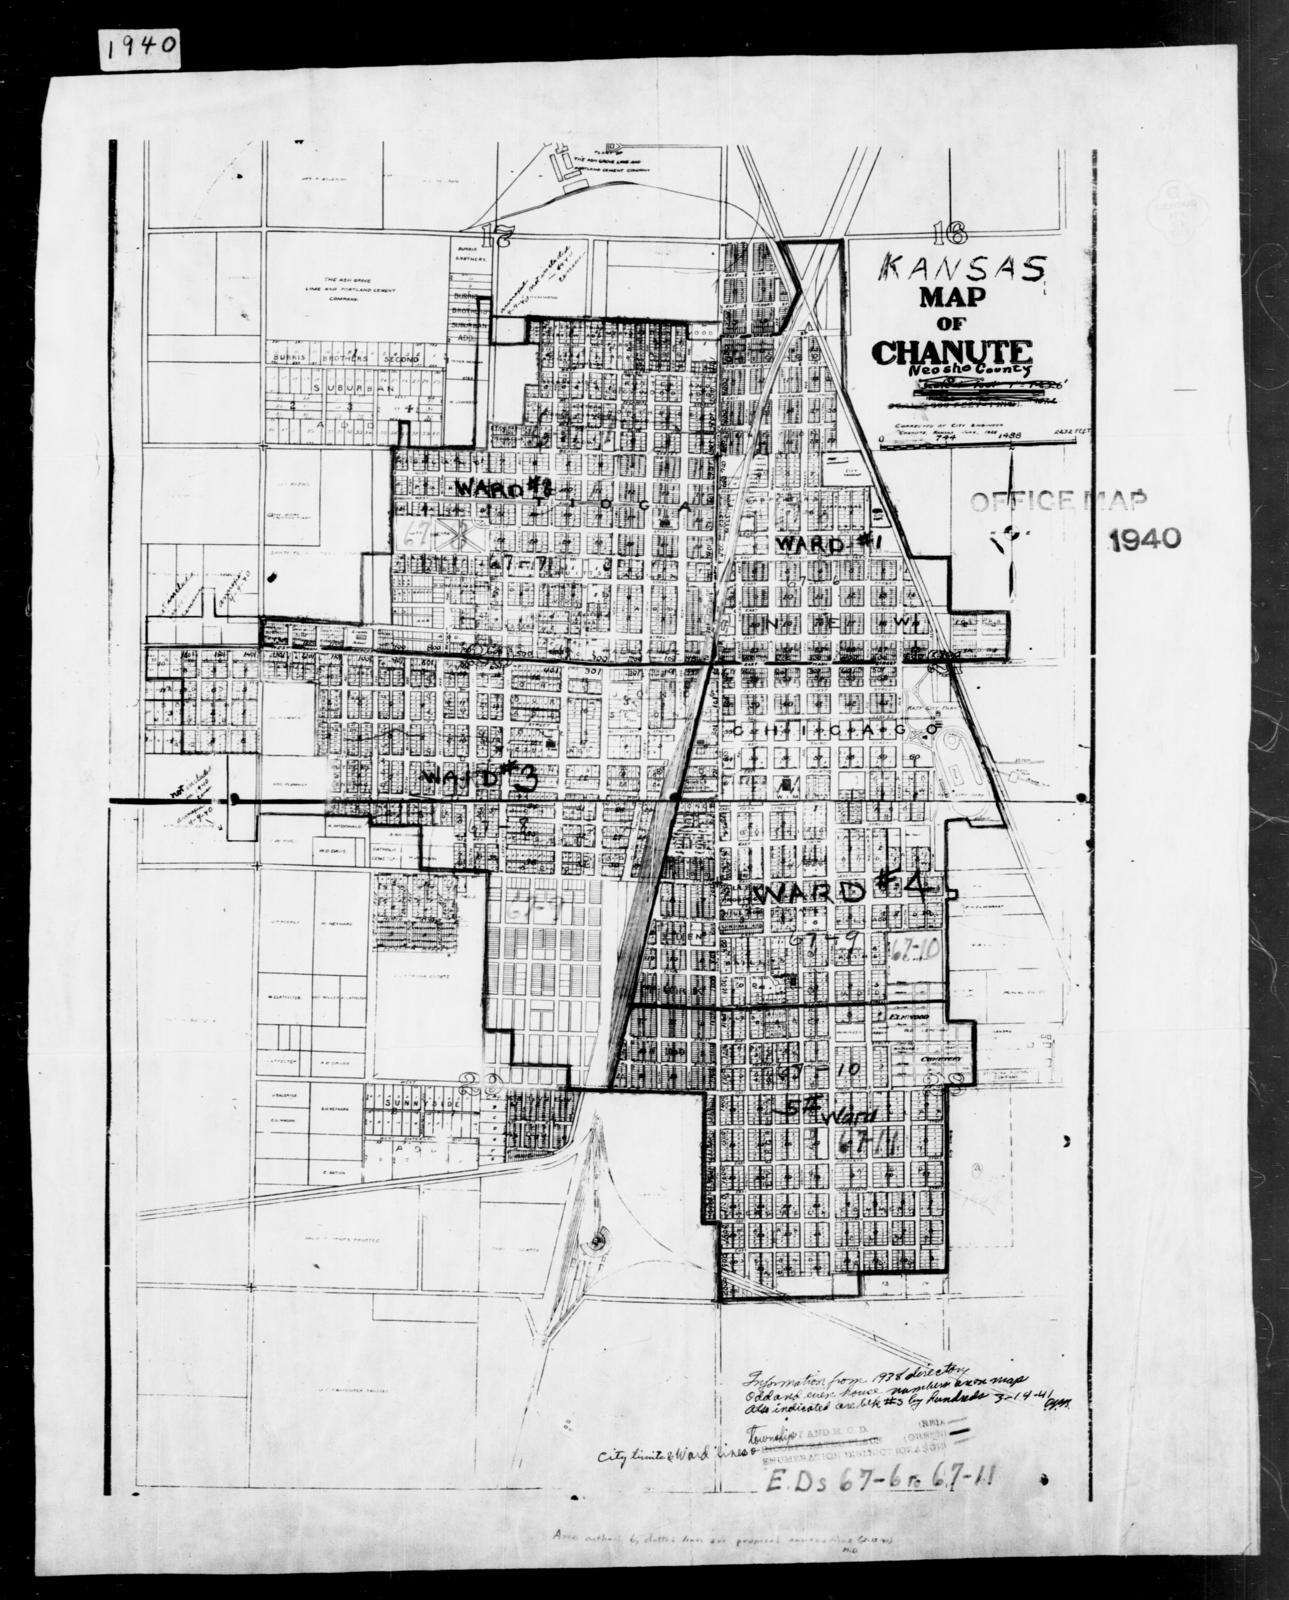 Chanute Kansas Map.1940 Census Enumeration District Maps Kansas Neosho County